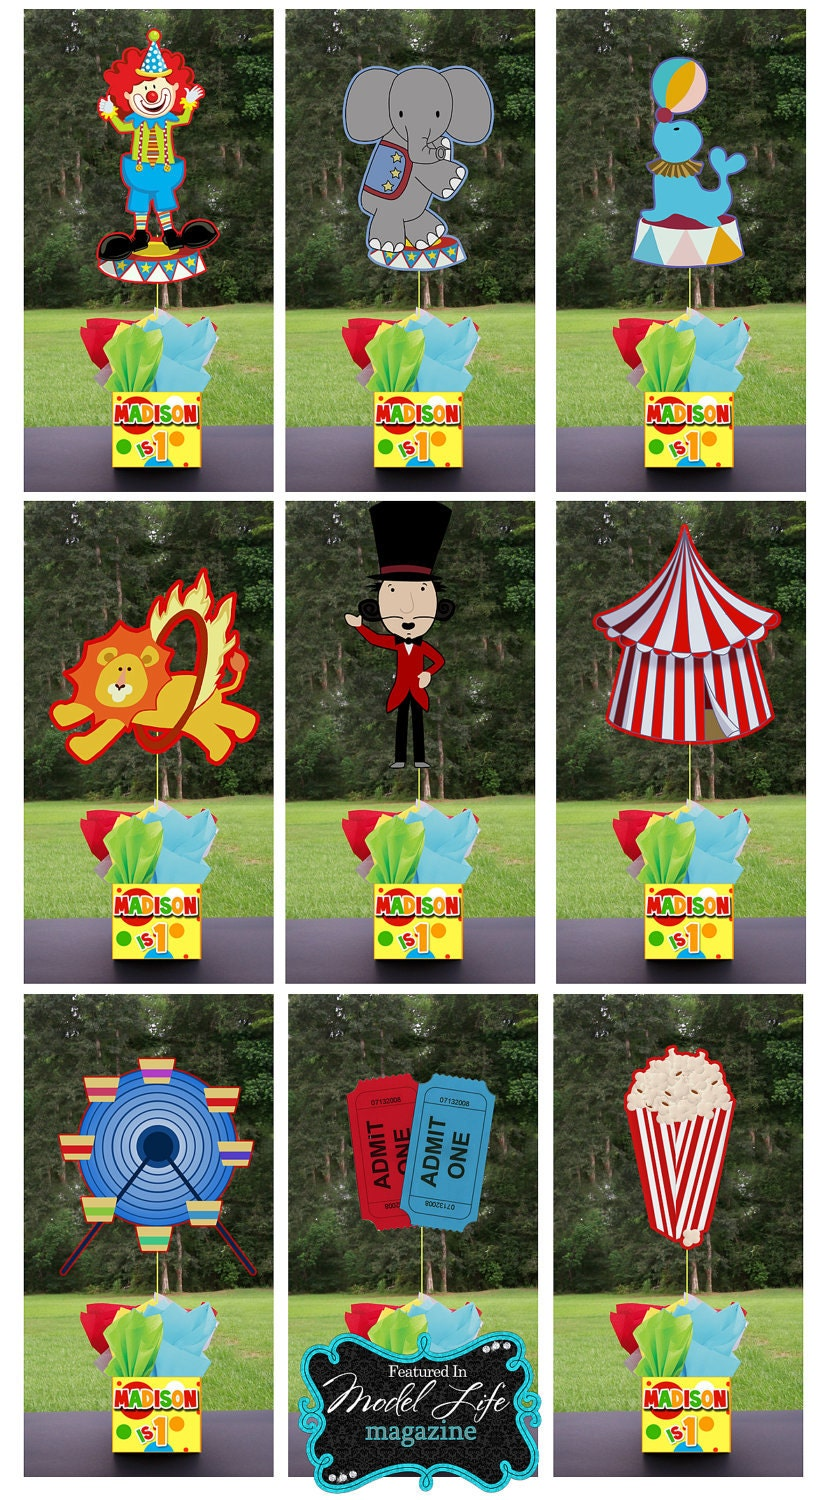 Circus Carnival Fair Party Centerpiece 3 Feet Tall And Favors